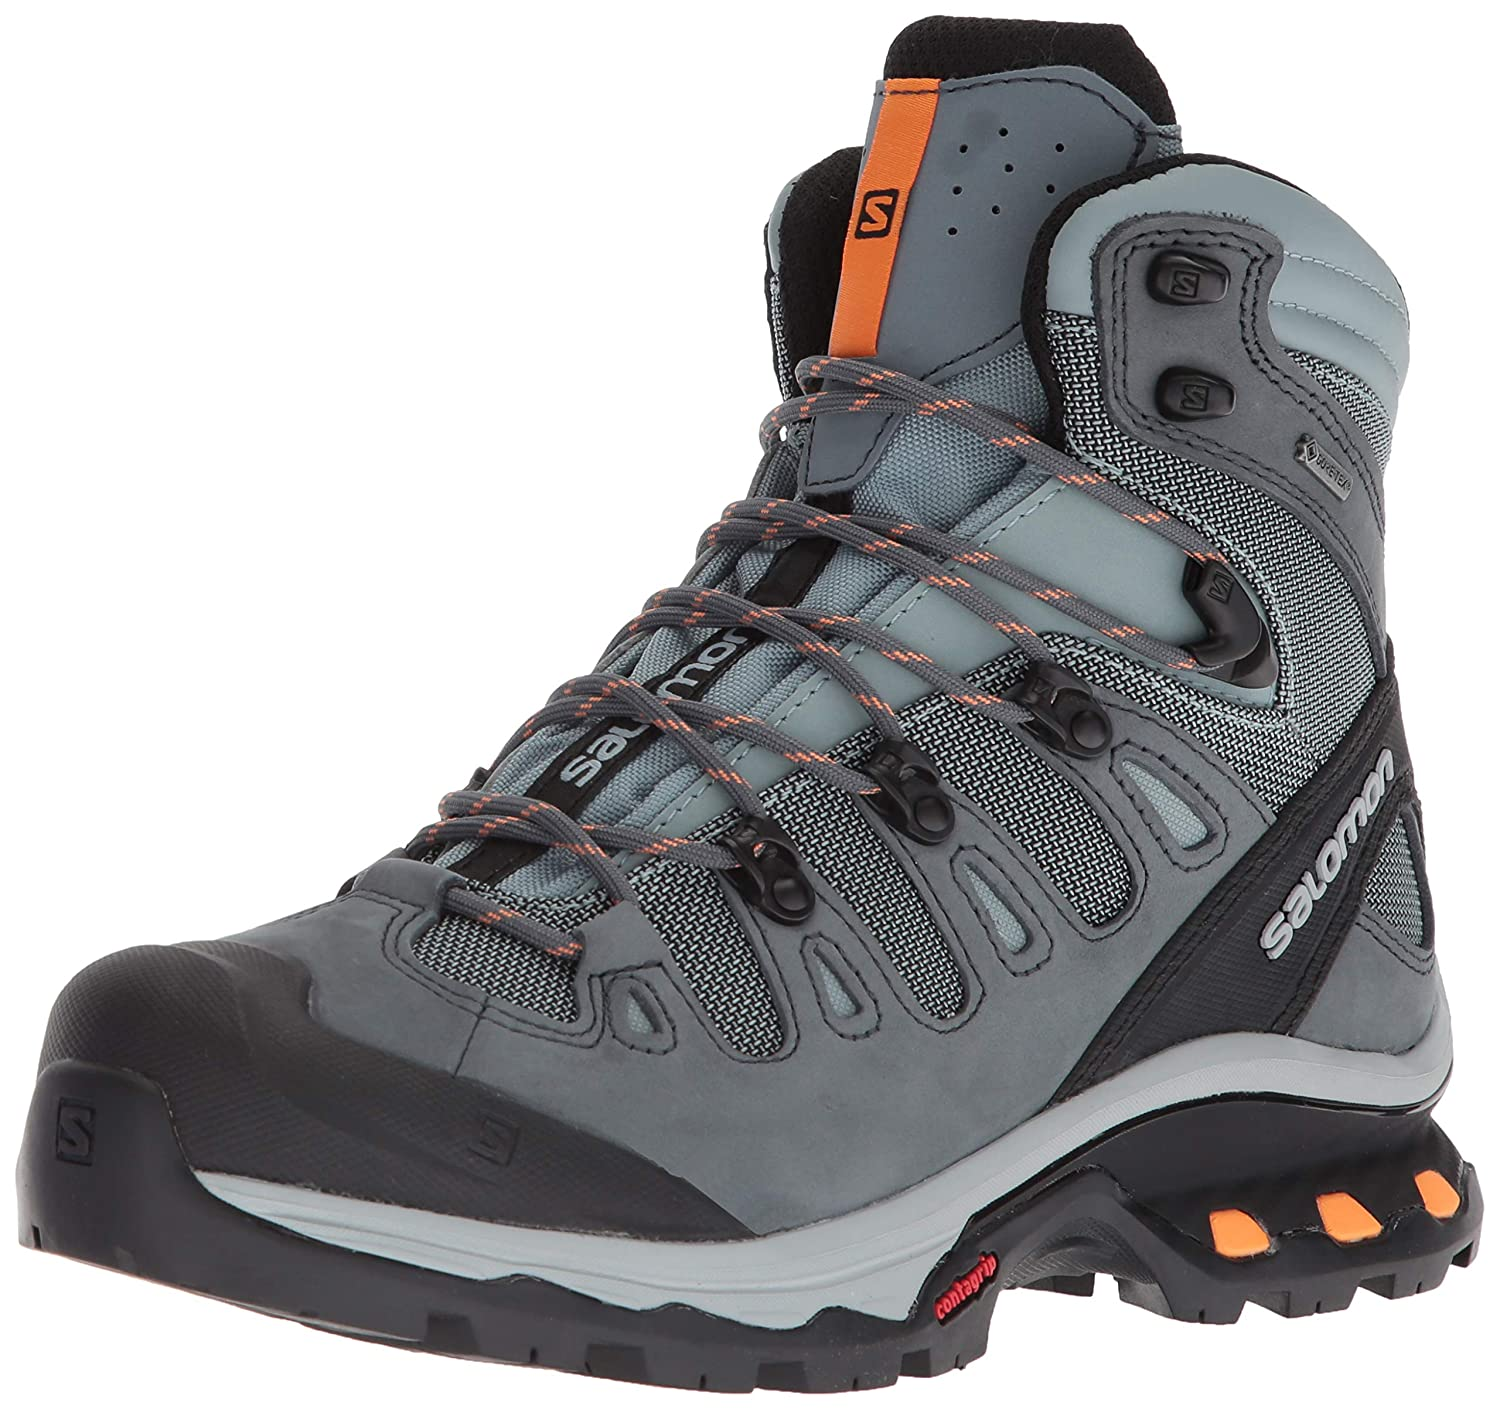 b0a2d887d6b Salomon Women's Quest 4d 3 Gtx W Backpacking Boots